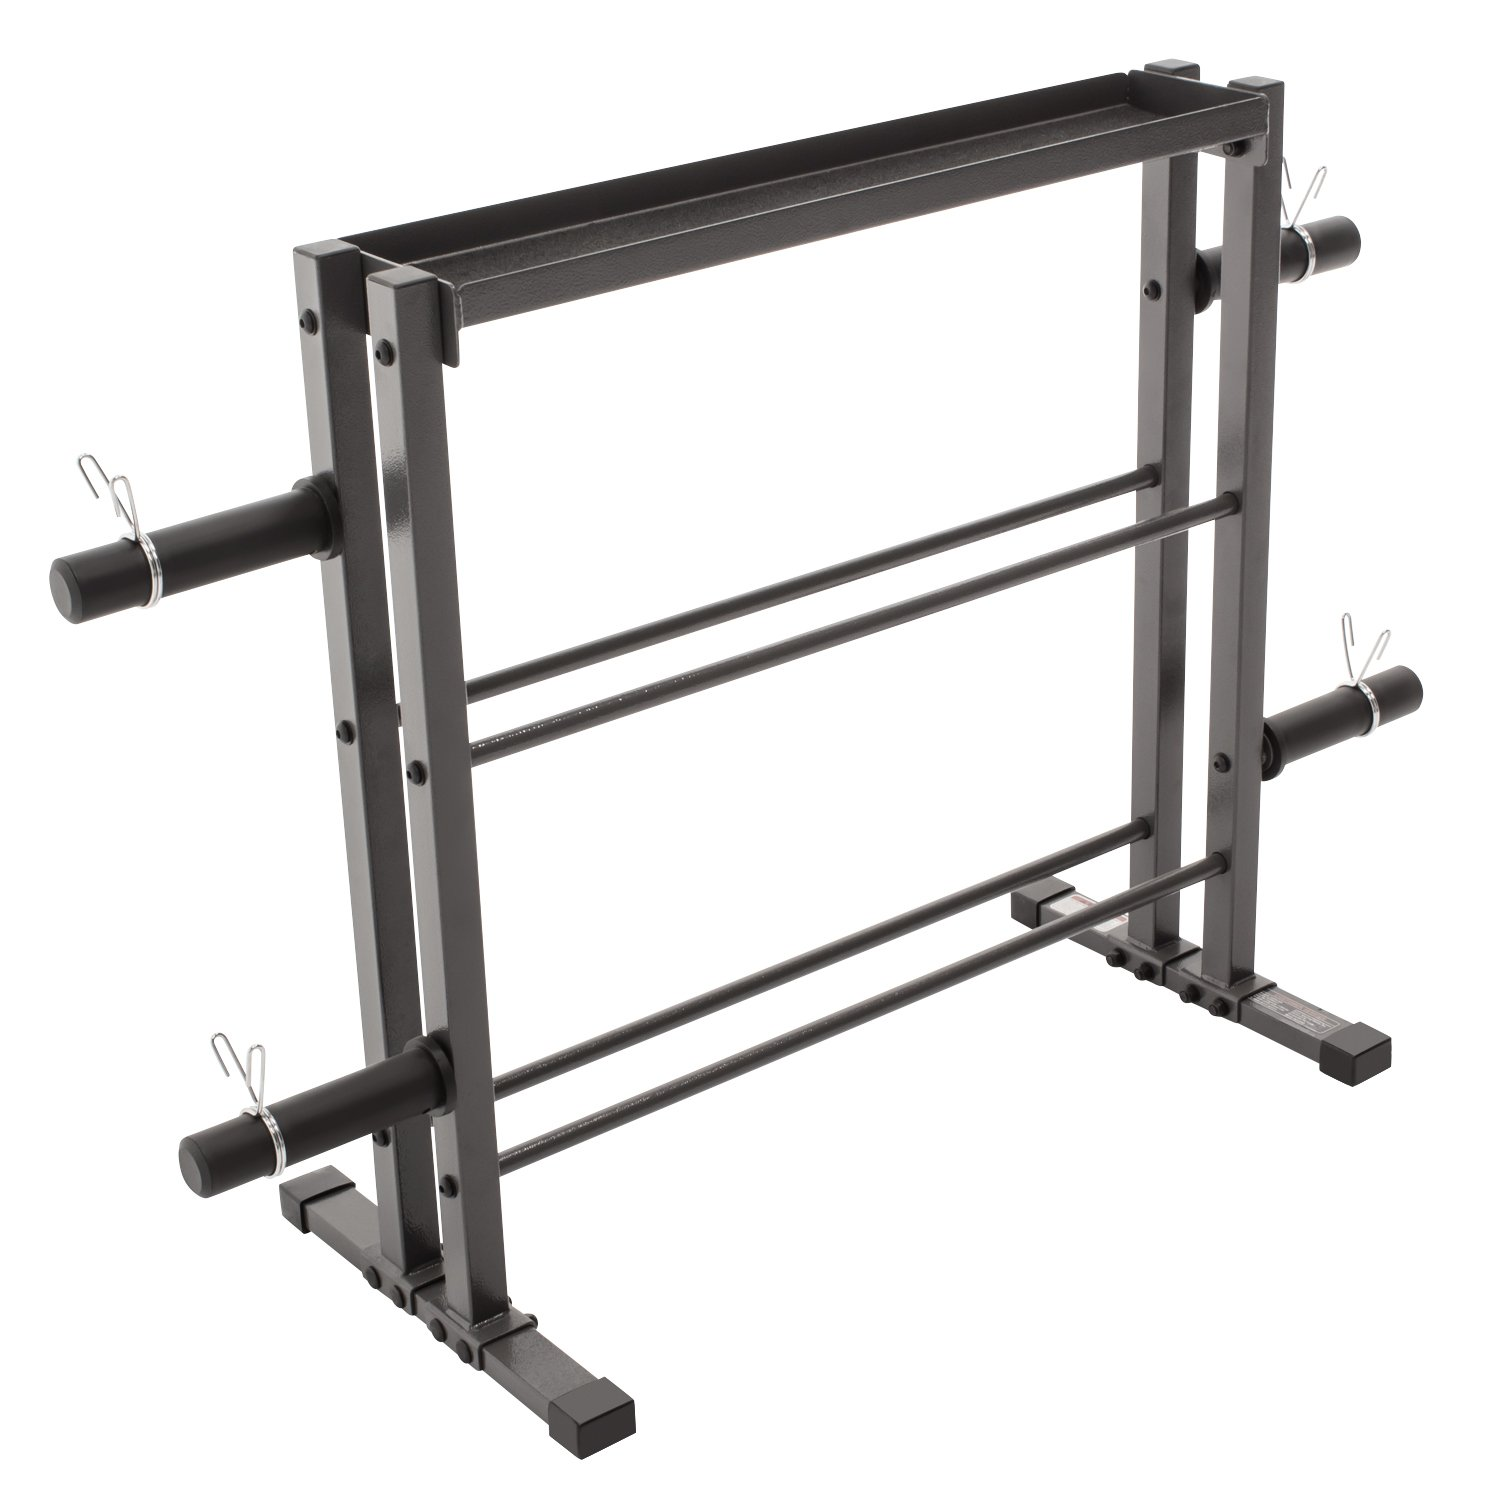 Marcy Combo Weights Storage Rack for Dumbbells, Kettlebells, and Weight Plates DBR-0117 by Marcy